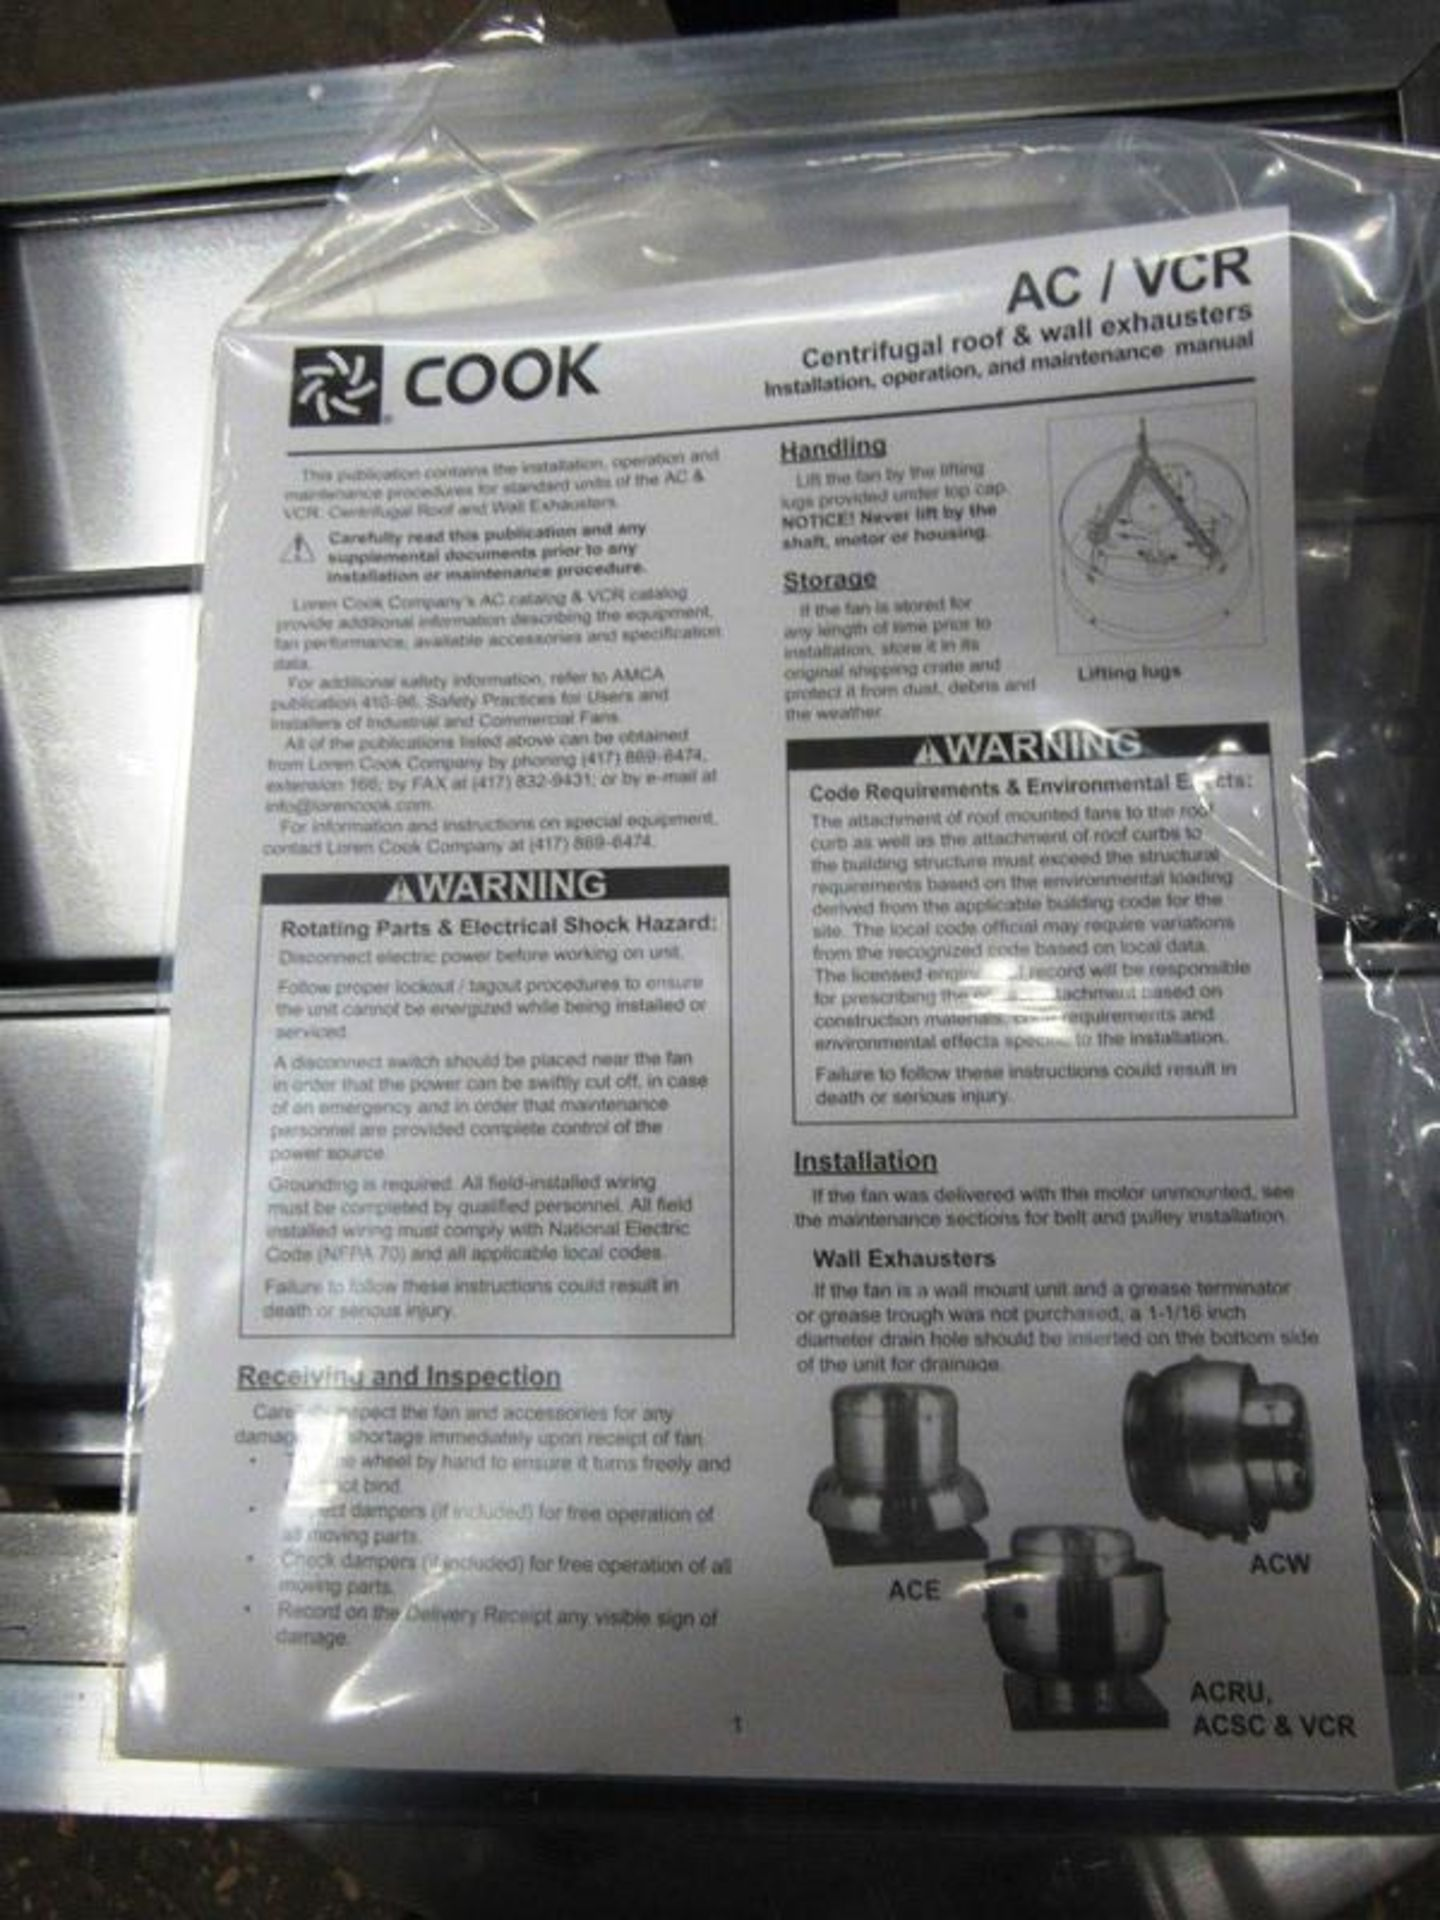 Cook Mdl. 120ACE120C13D Exhaust Fan, Ser. #012SG32092/01/0001801, H.P.0.250, 115 volts, ENCL:ODP, - Image 7 of 7